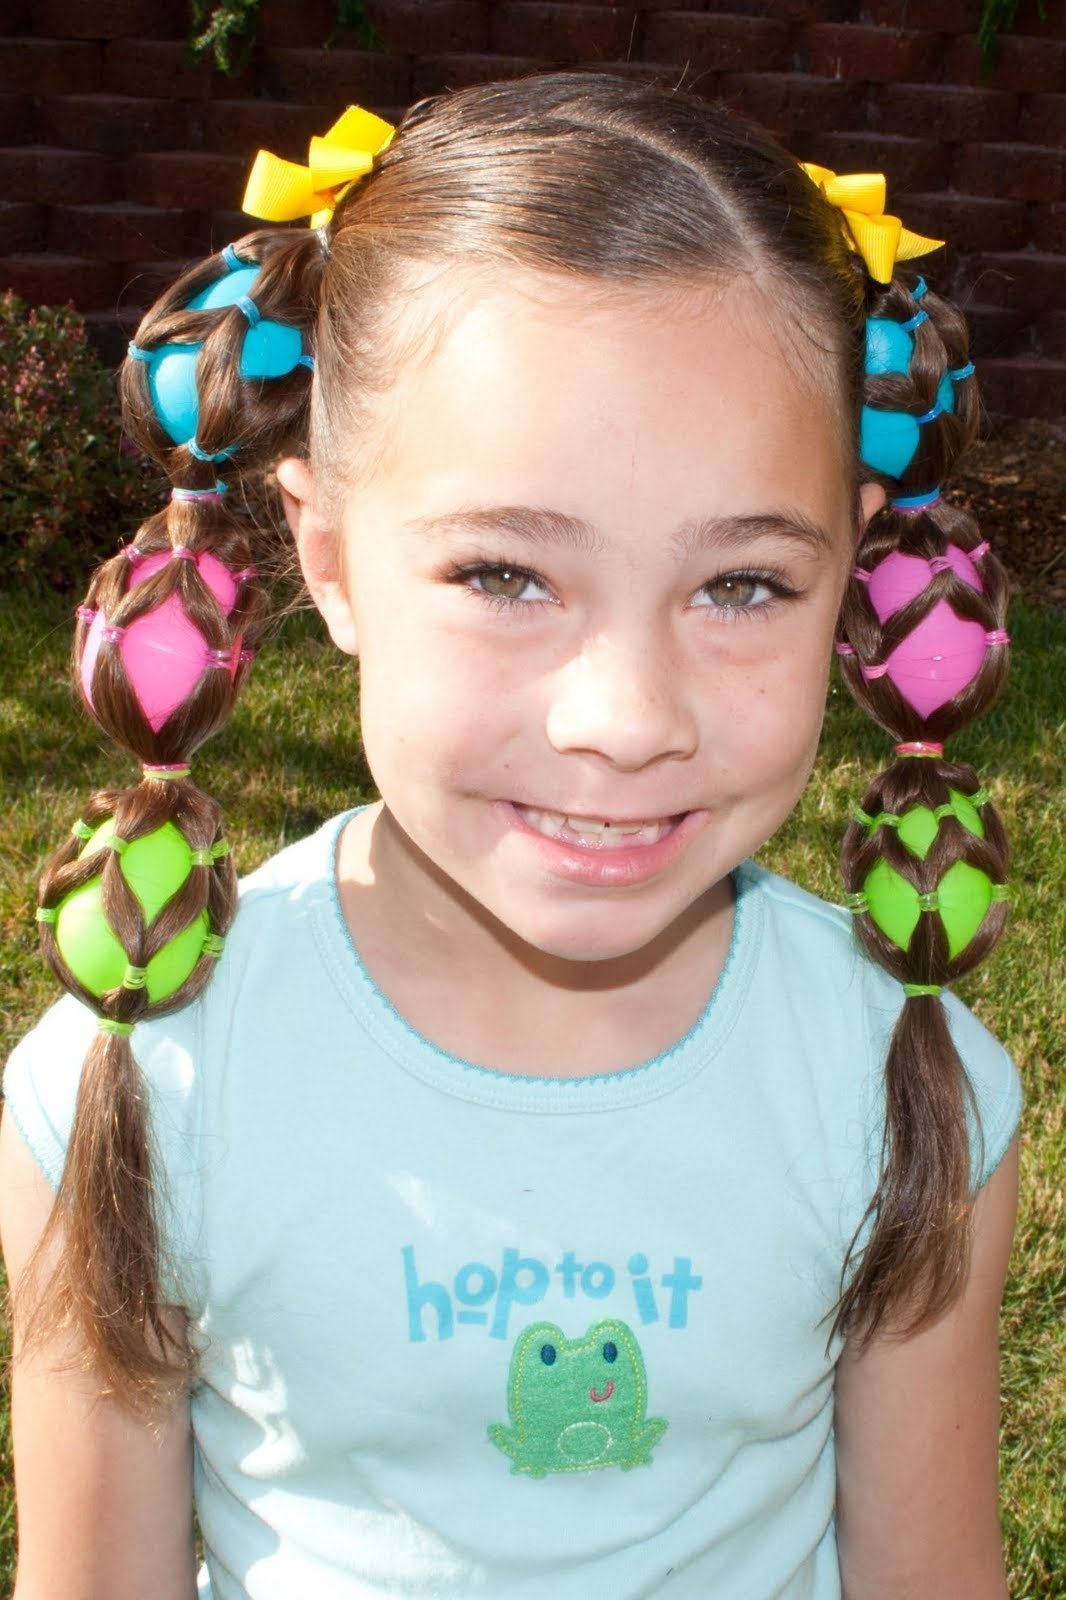 10 Fantastic Crazy Hair Ideas For Girls 25 clever ideas for wacky hair day at school including 7 2020